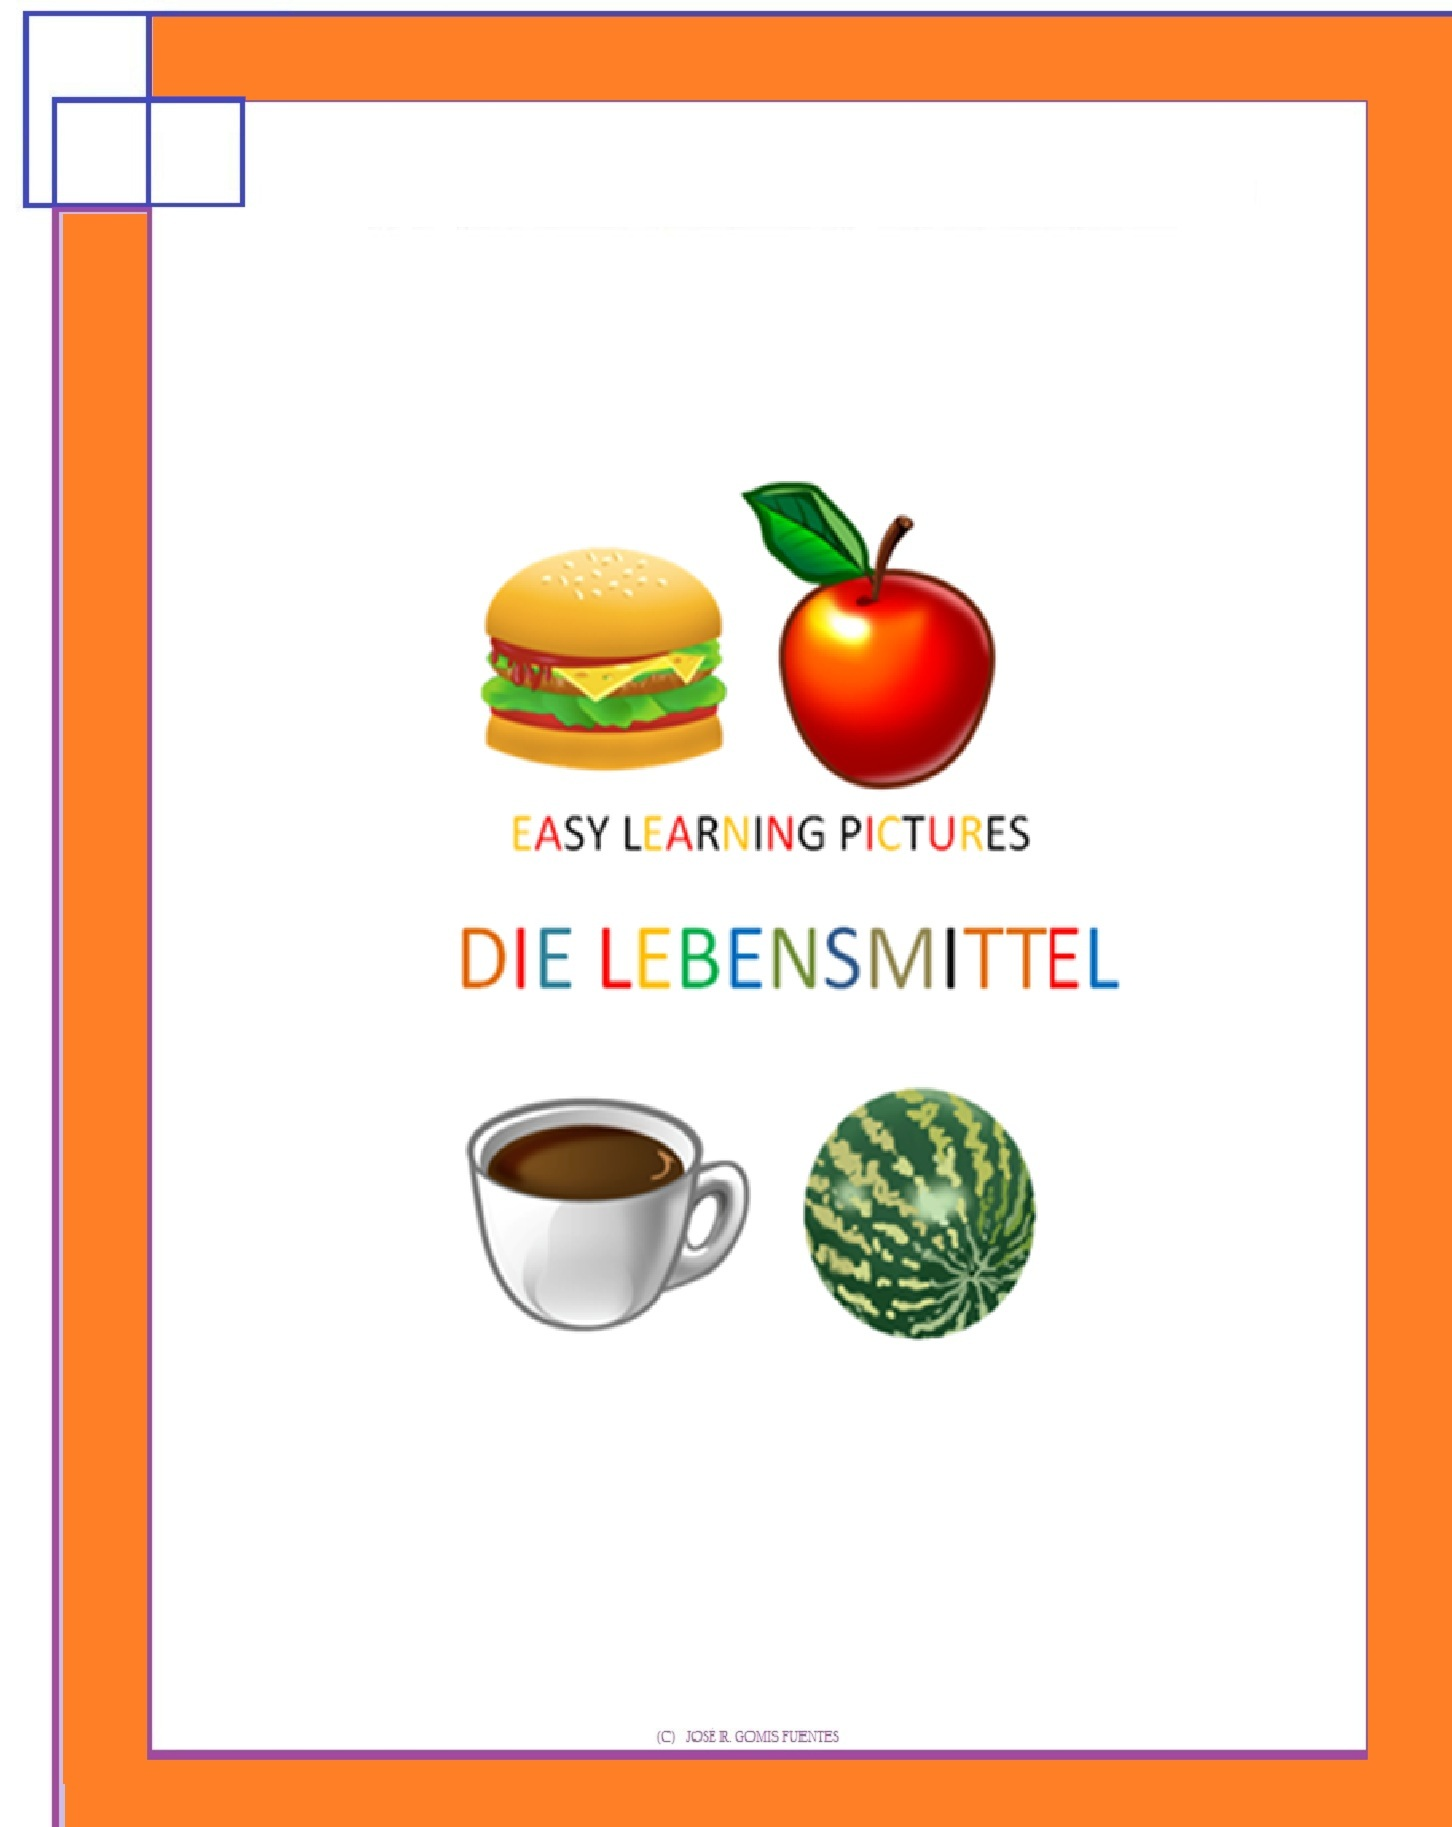 Easy Learning Pictures. Die Lebensmittel